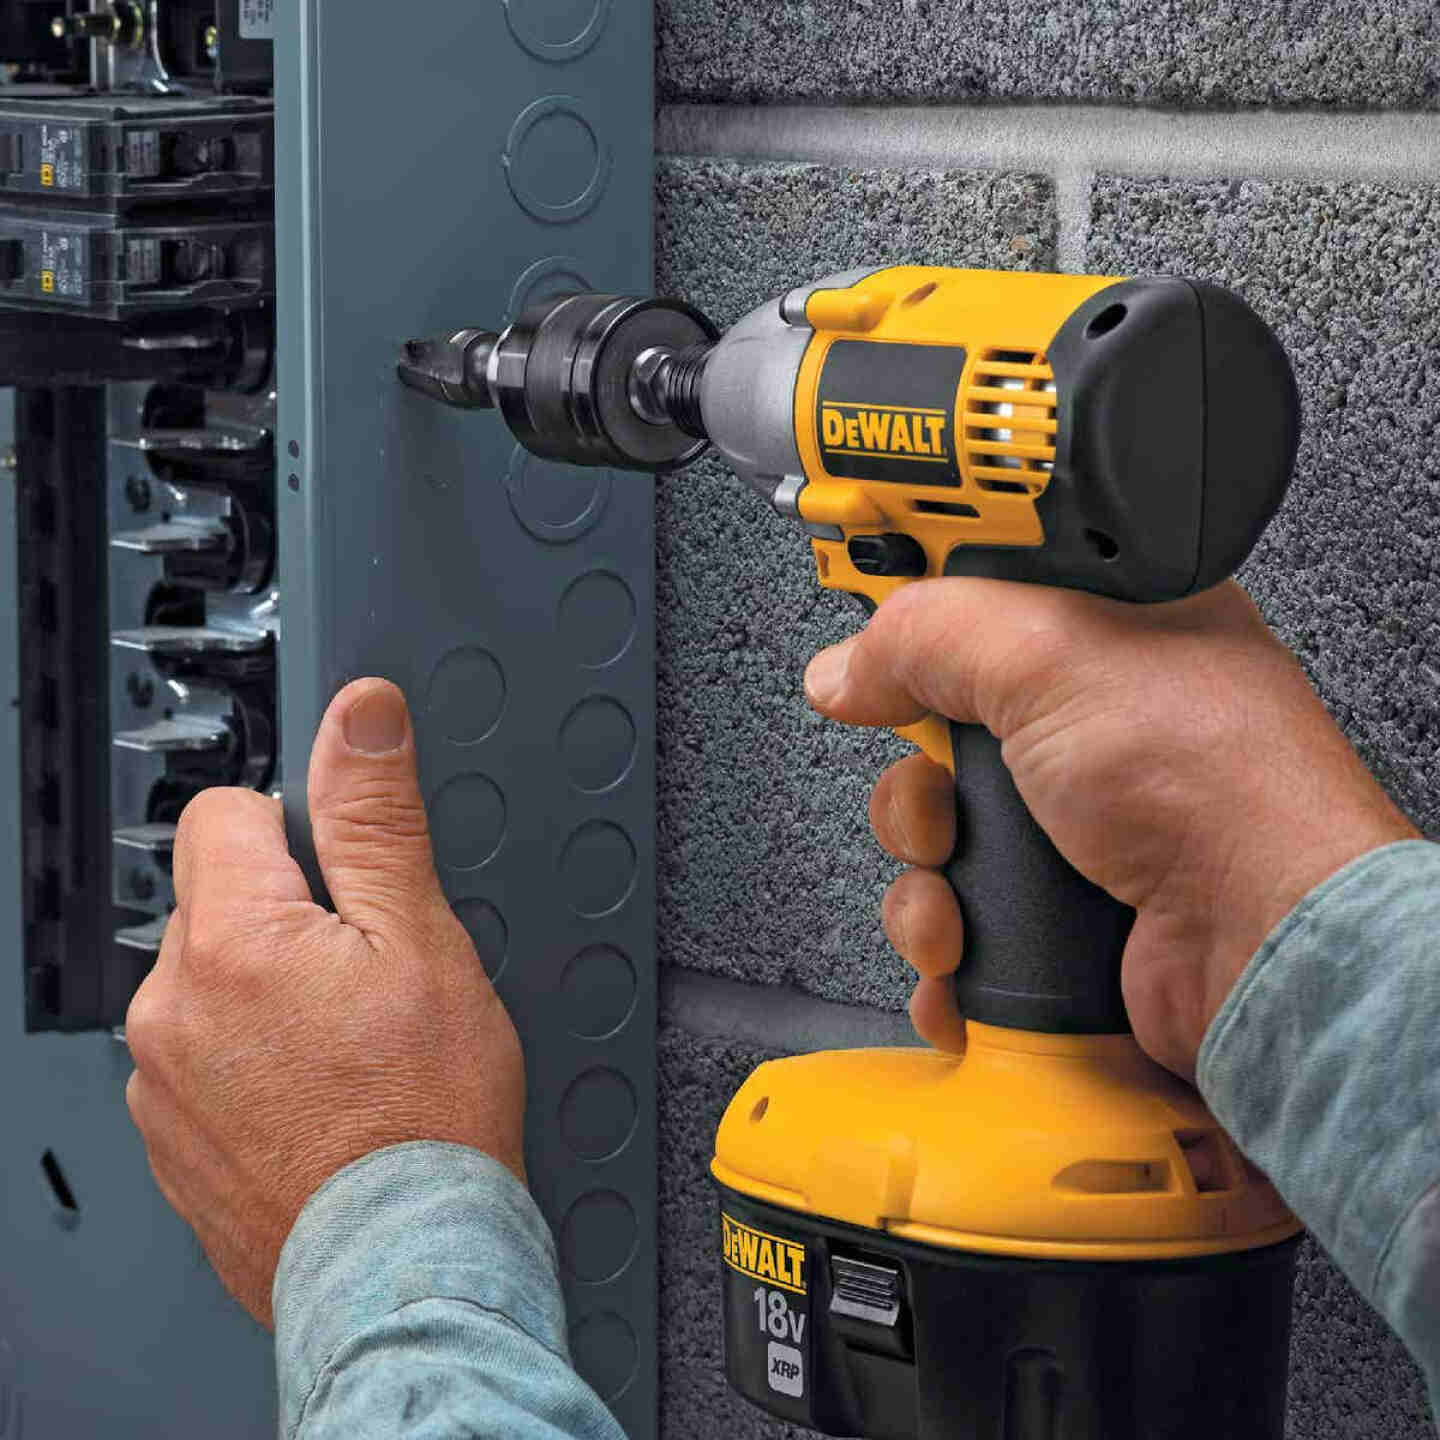 DeWalt 1/4 In. Quick Connet to 3/8 In. Keyless Impact Chuck Adapter Image 3